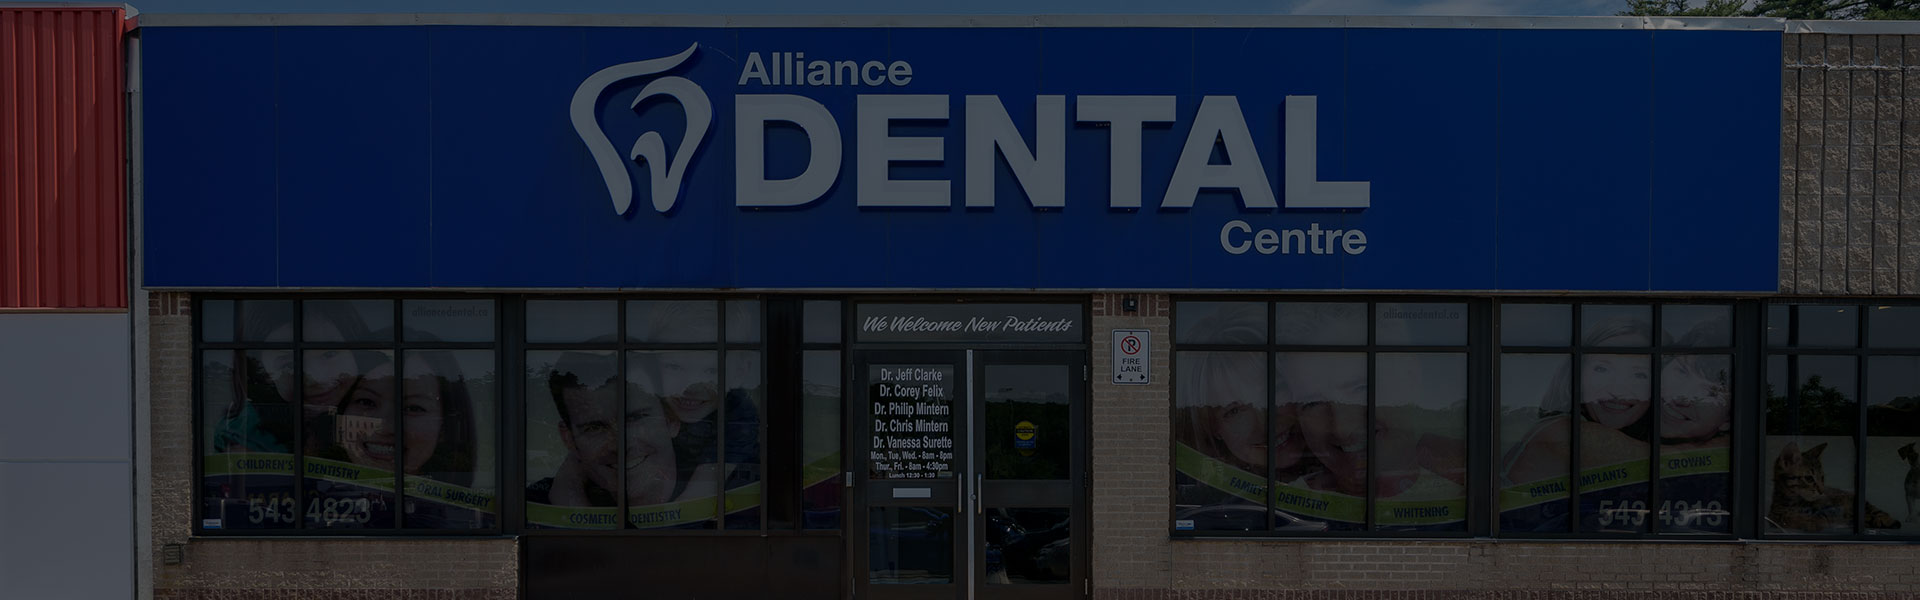 alliance dental center bridgewater